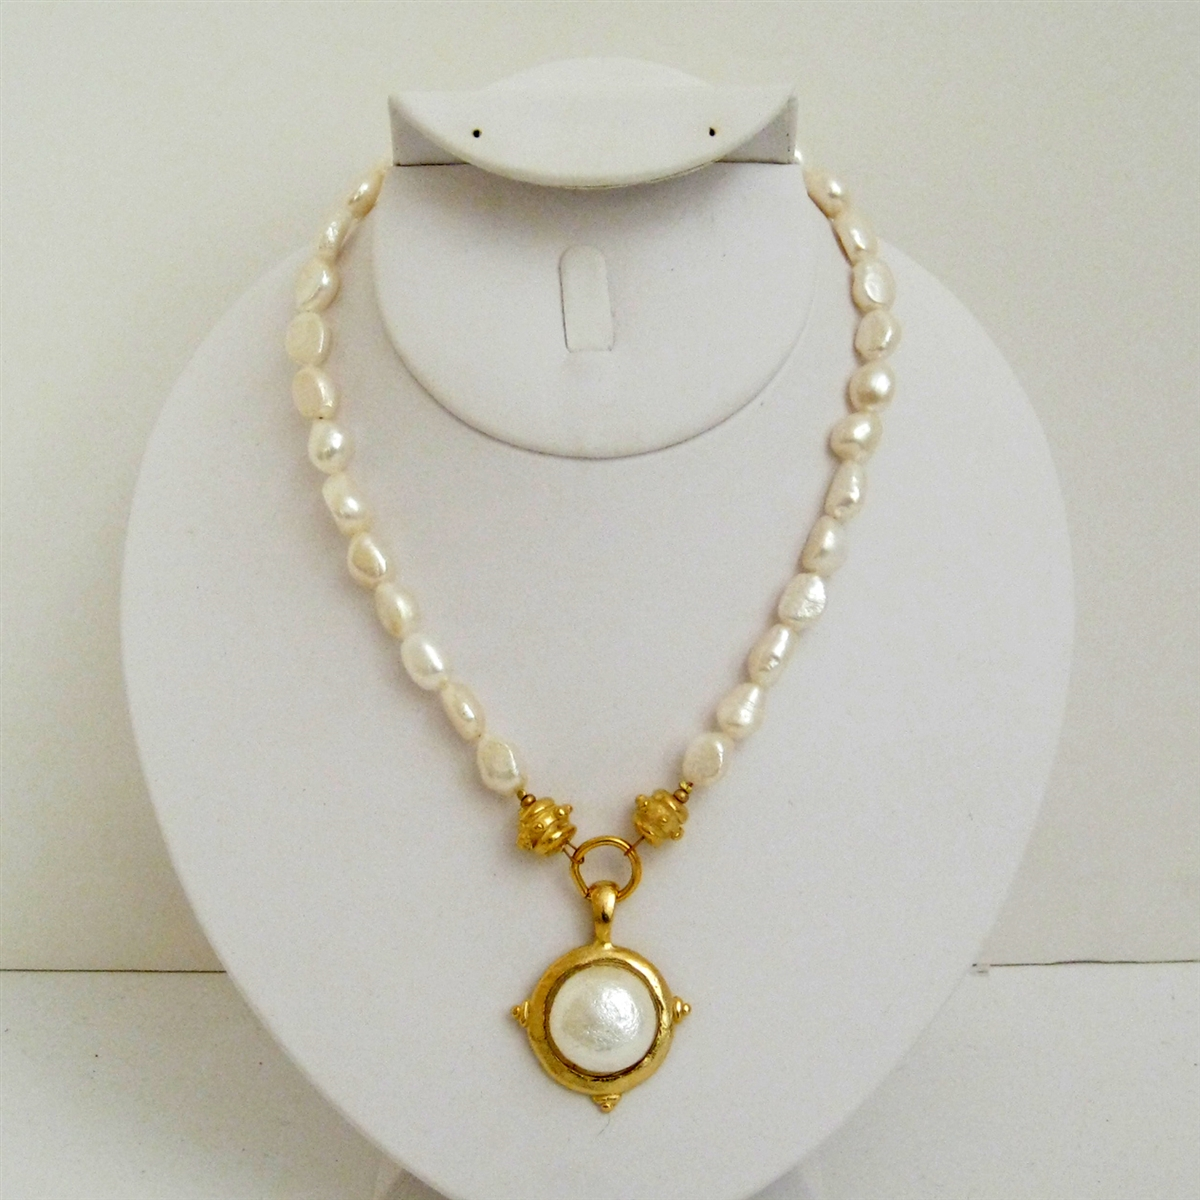 Oval Cotton Pearl Necklace With Cross From Susan Shaw